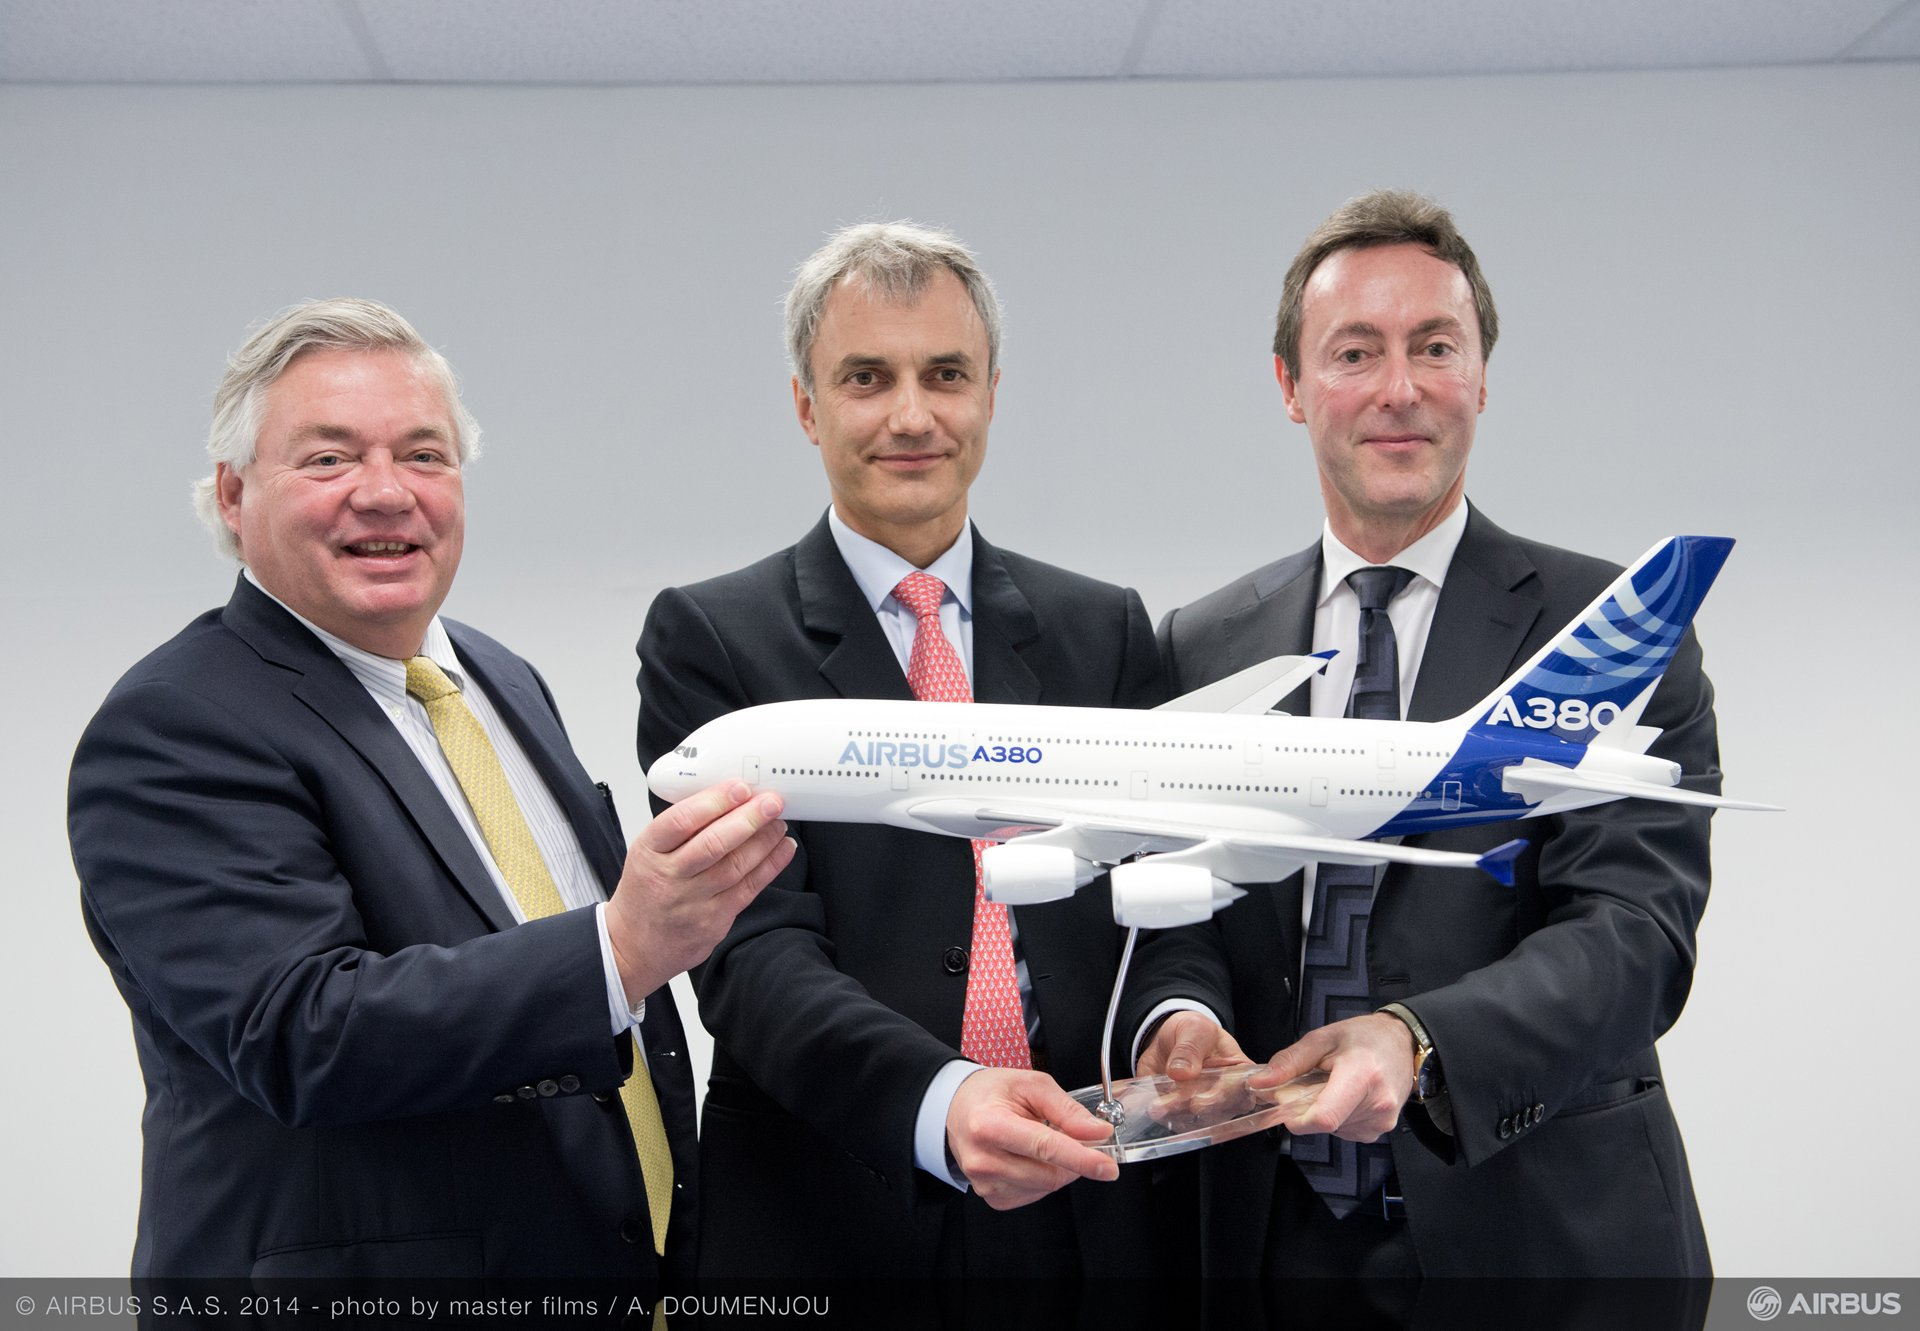 Amedeo firms up order for 20 A380s - 02